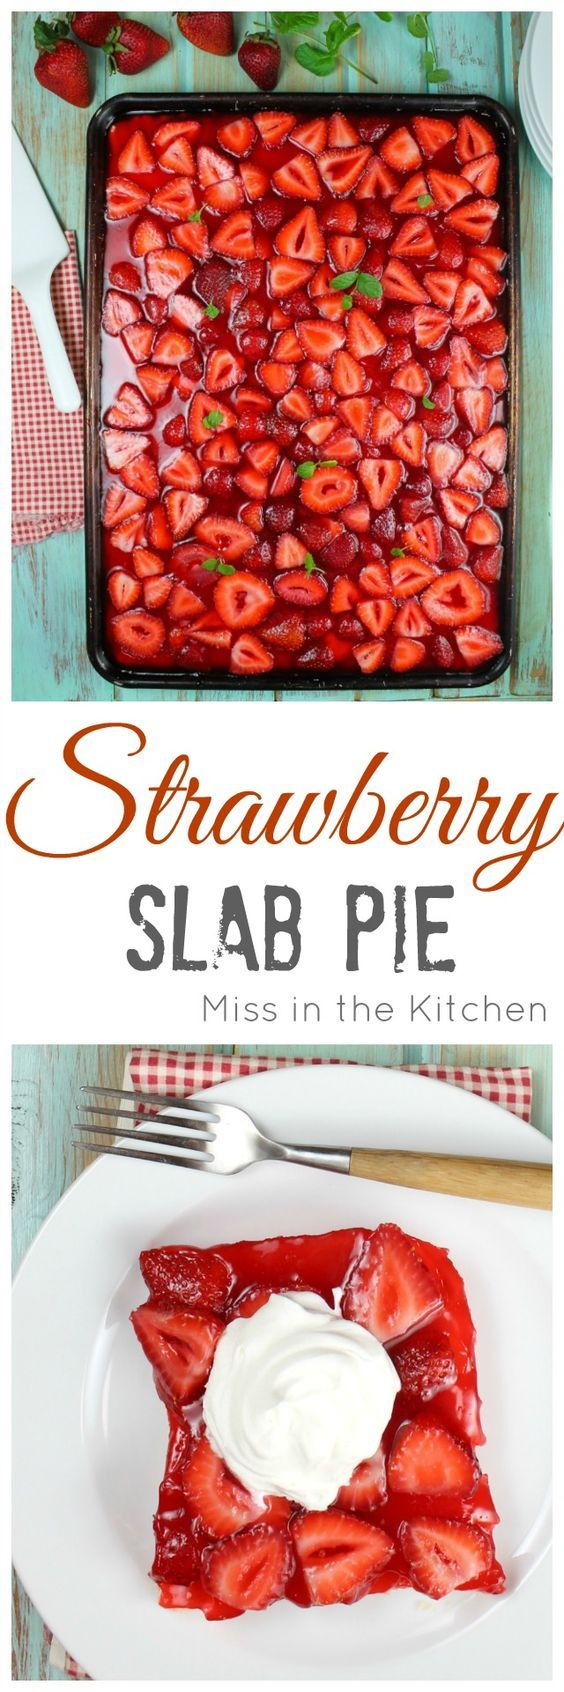 Strawberry Slab Pie Recipe for all of your summer get togethers and cookouts.  Made with fresh strawberries!